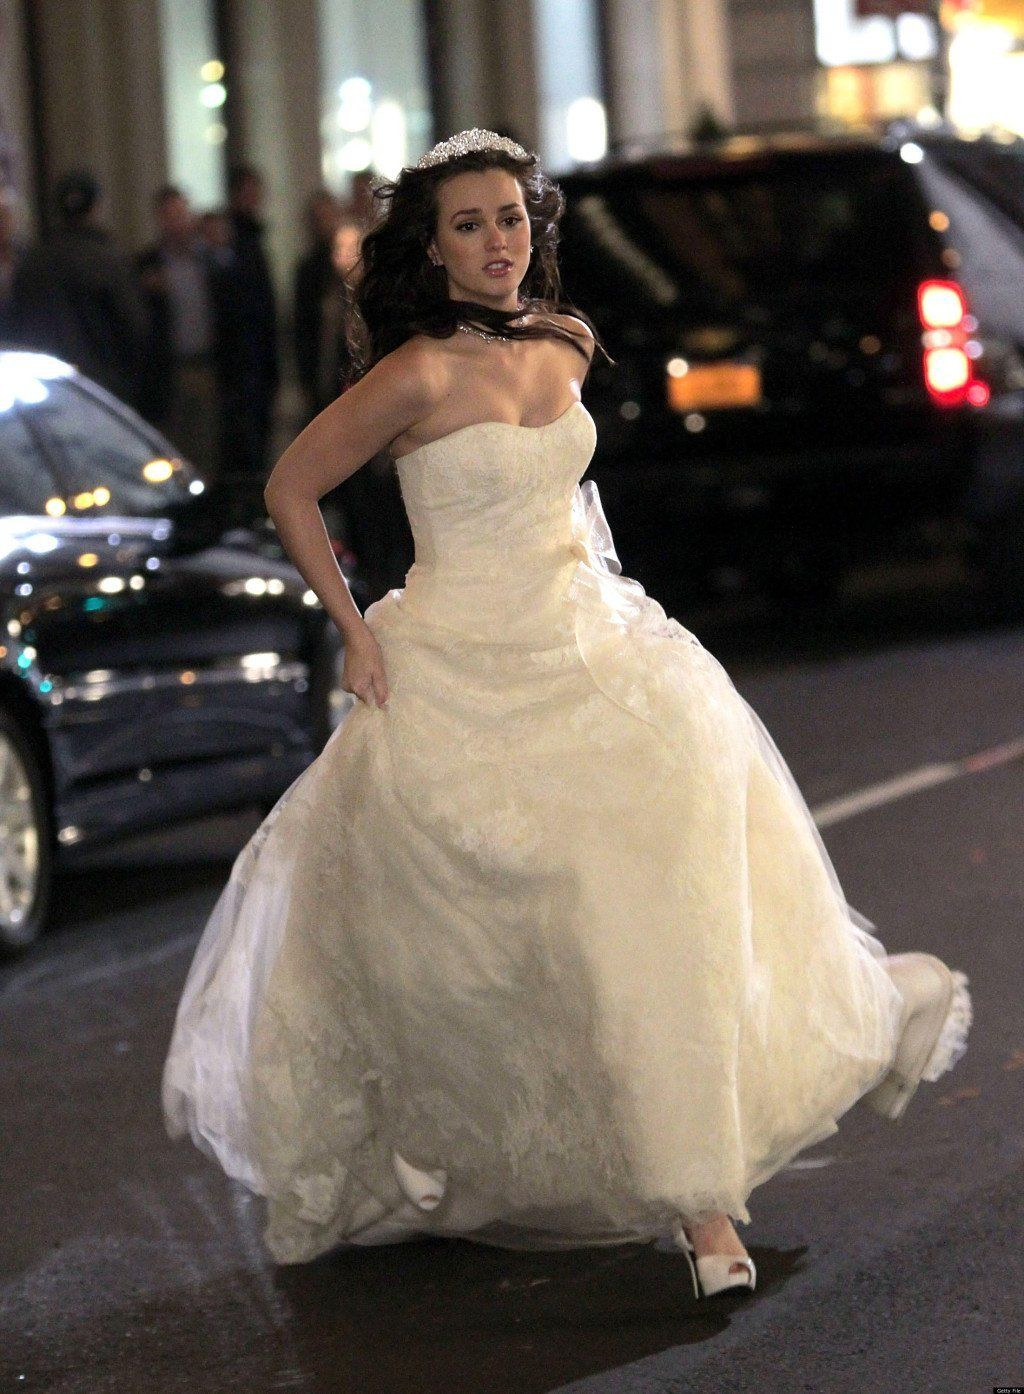 When she ran away from her wedding to the Prince of Monaco. Times ...